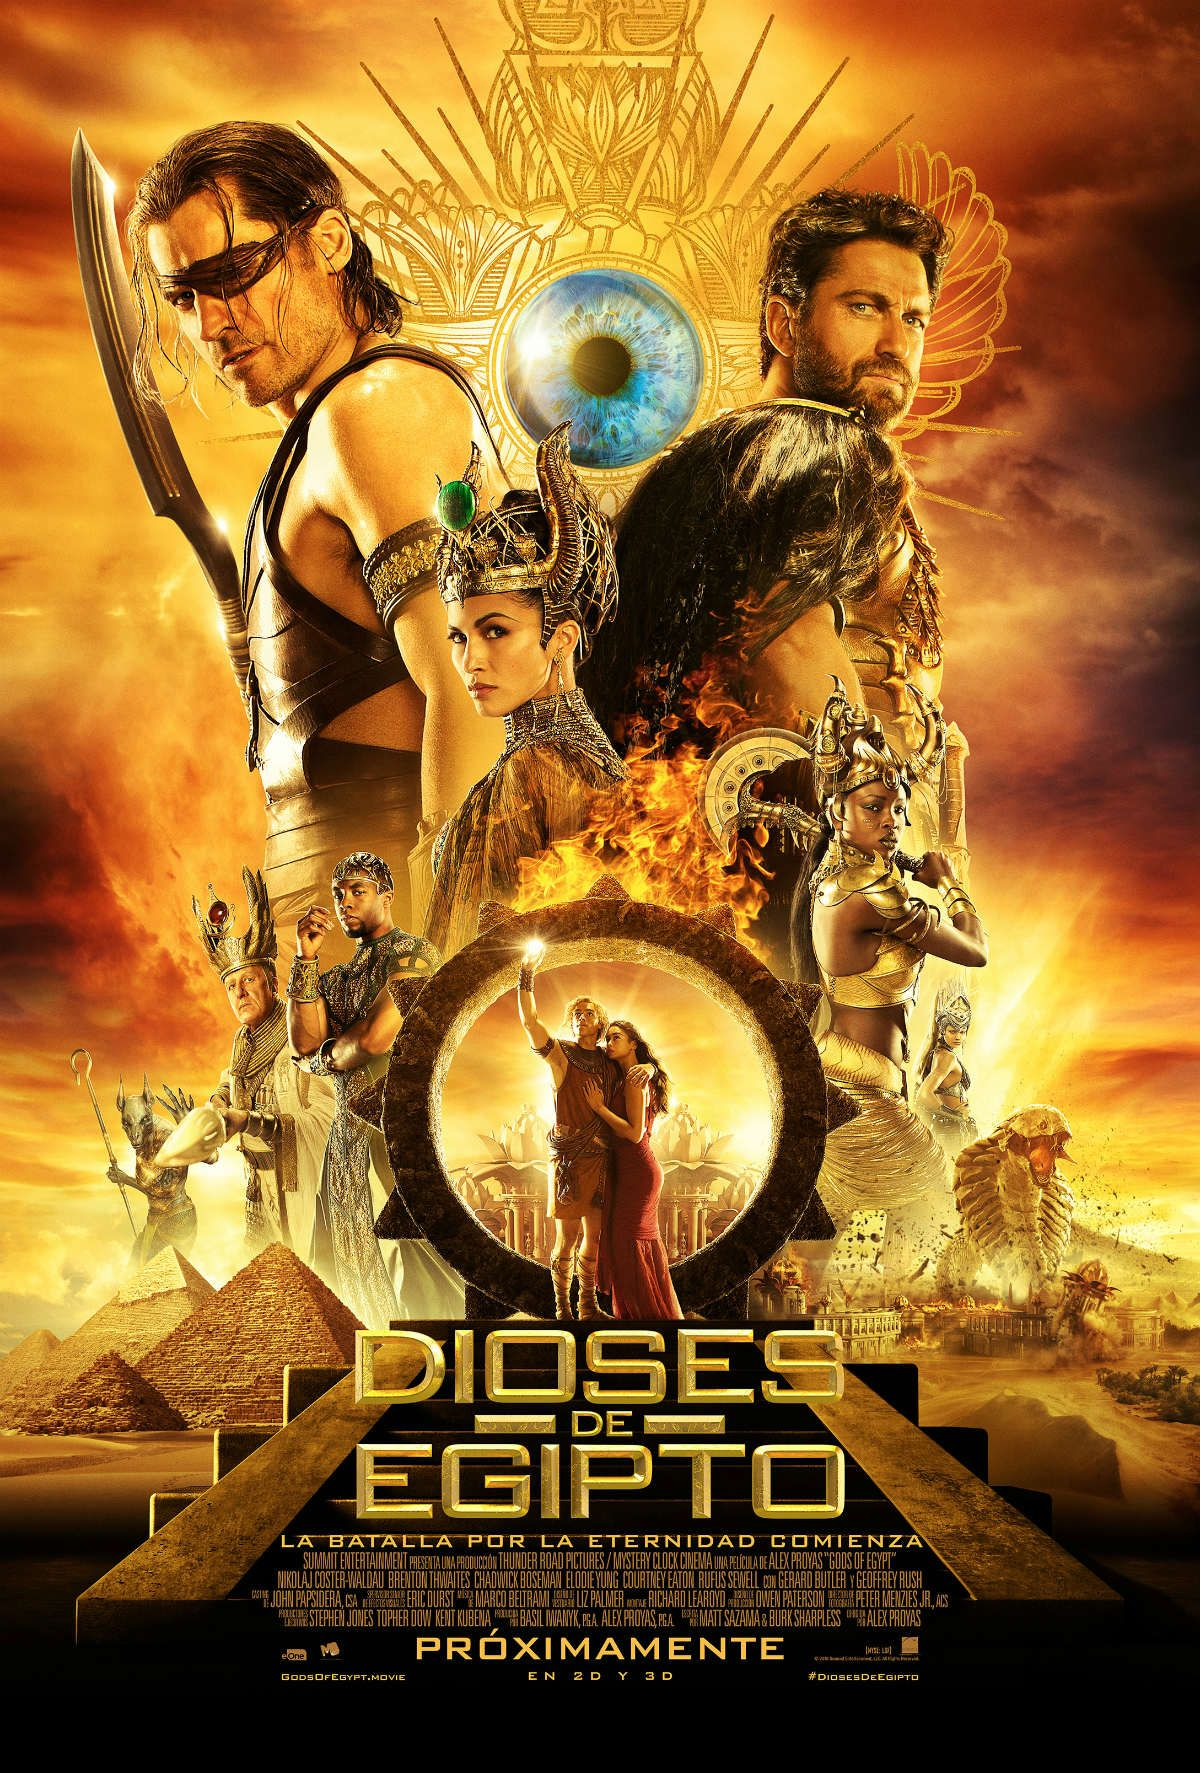 Dioses De Egipto Reparto Buscar Con Google Egypt Movie Gods Of Egypt Gods Of Egypt Movie